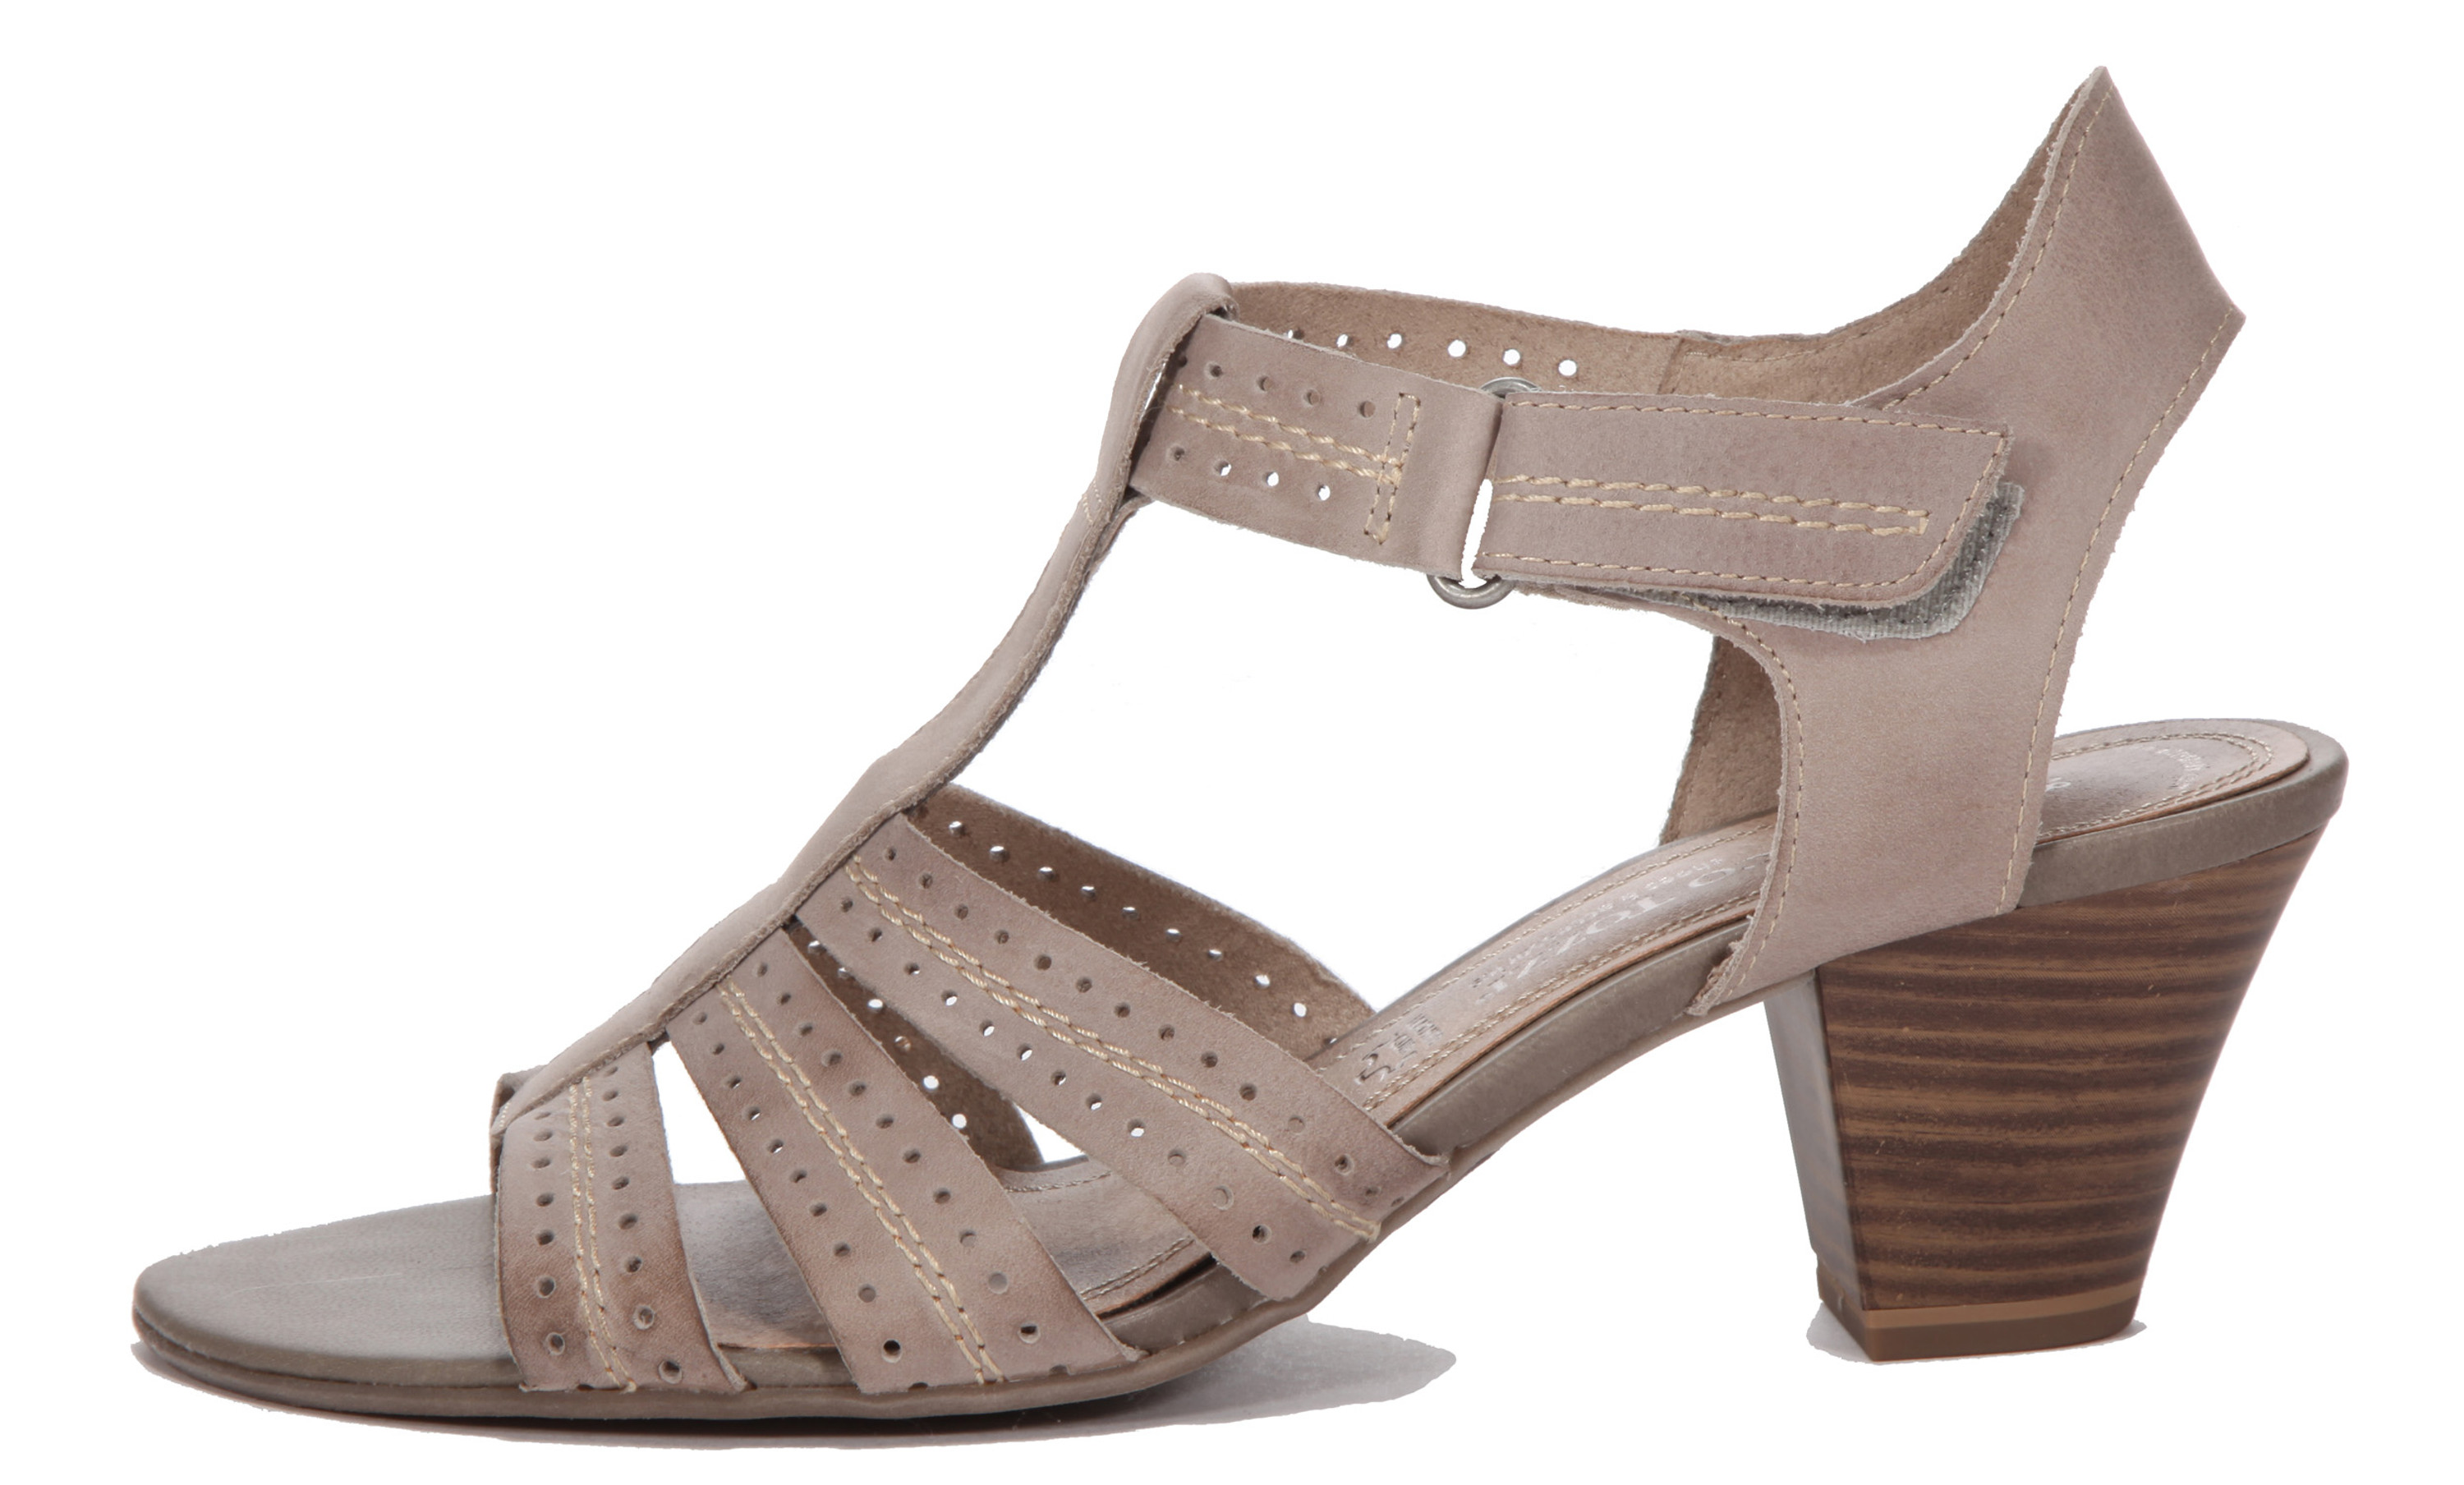 check out 8f6f4 a7947 Marco Tozzi Sandalette taupe